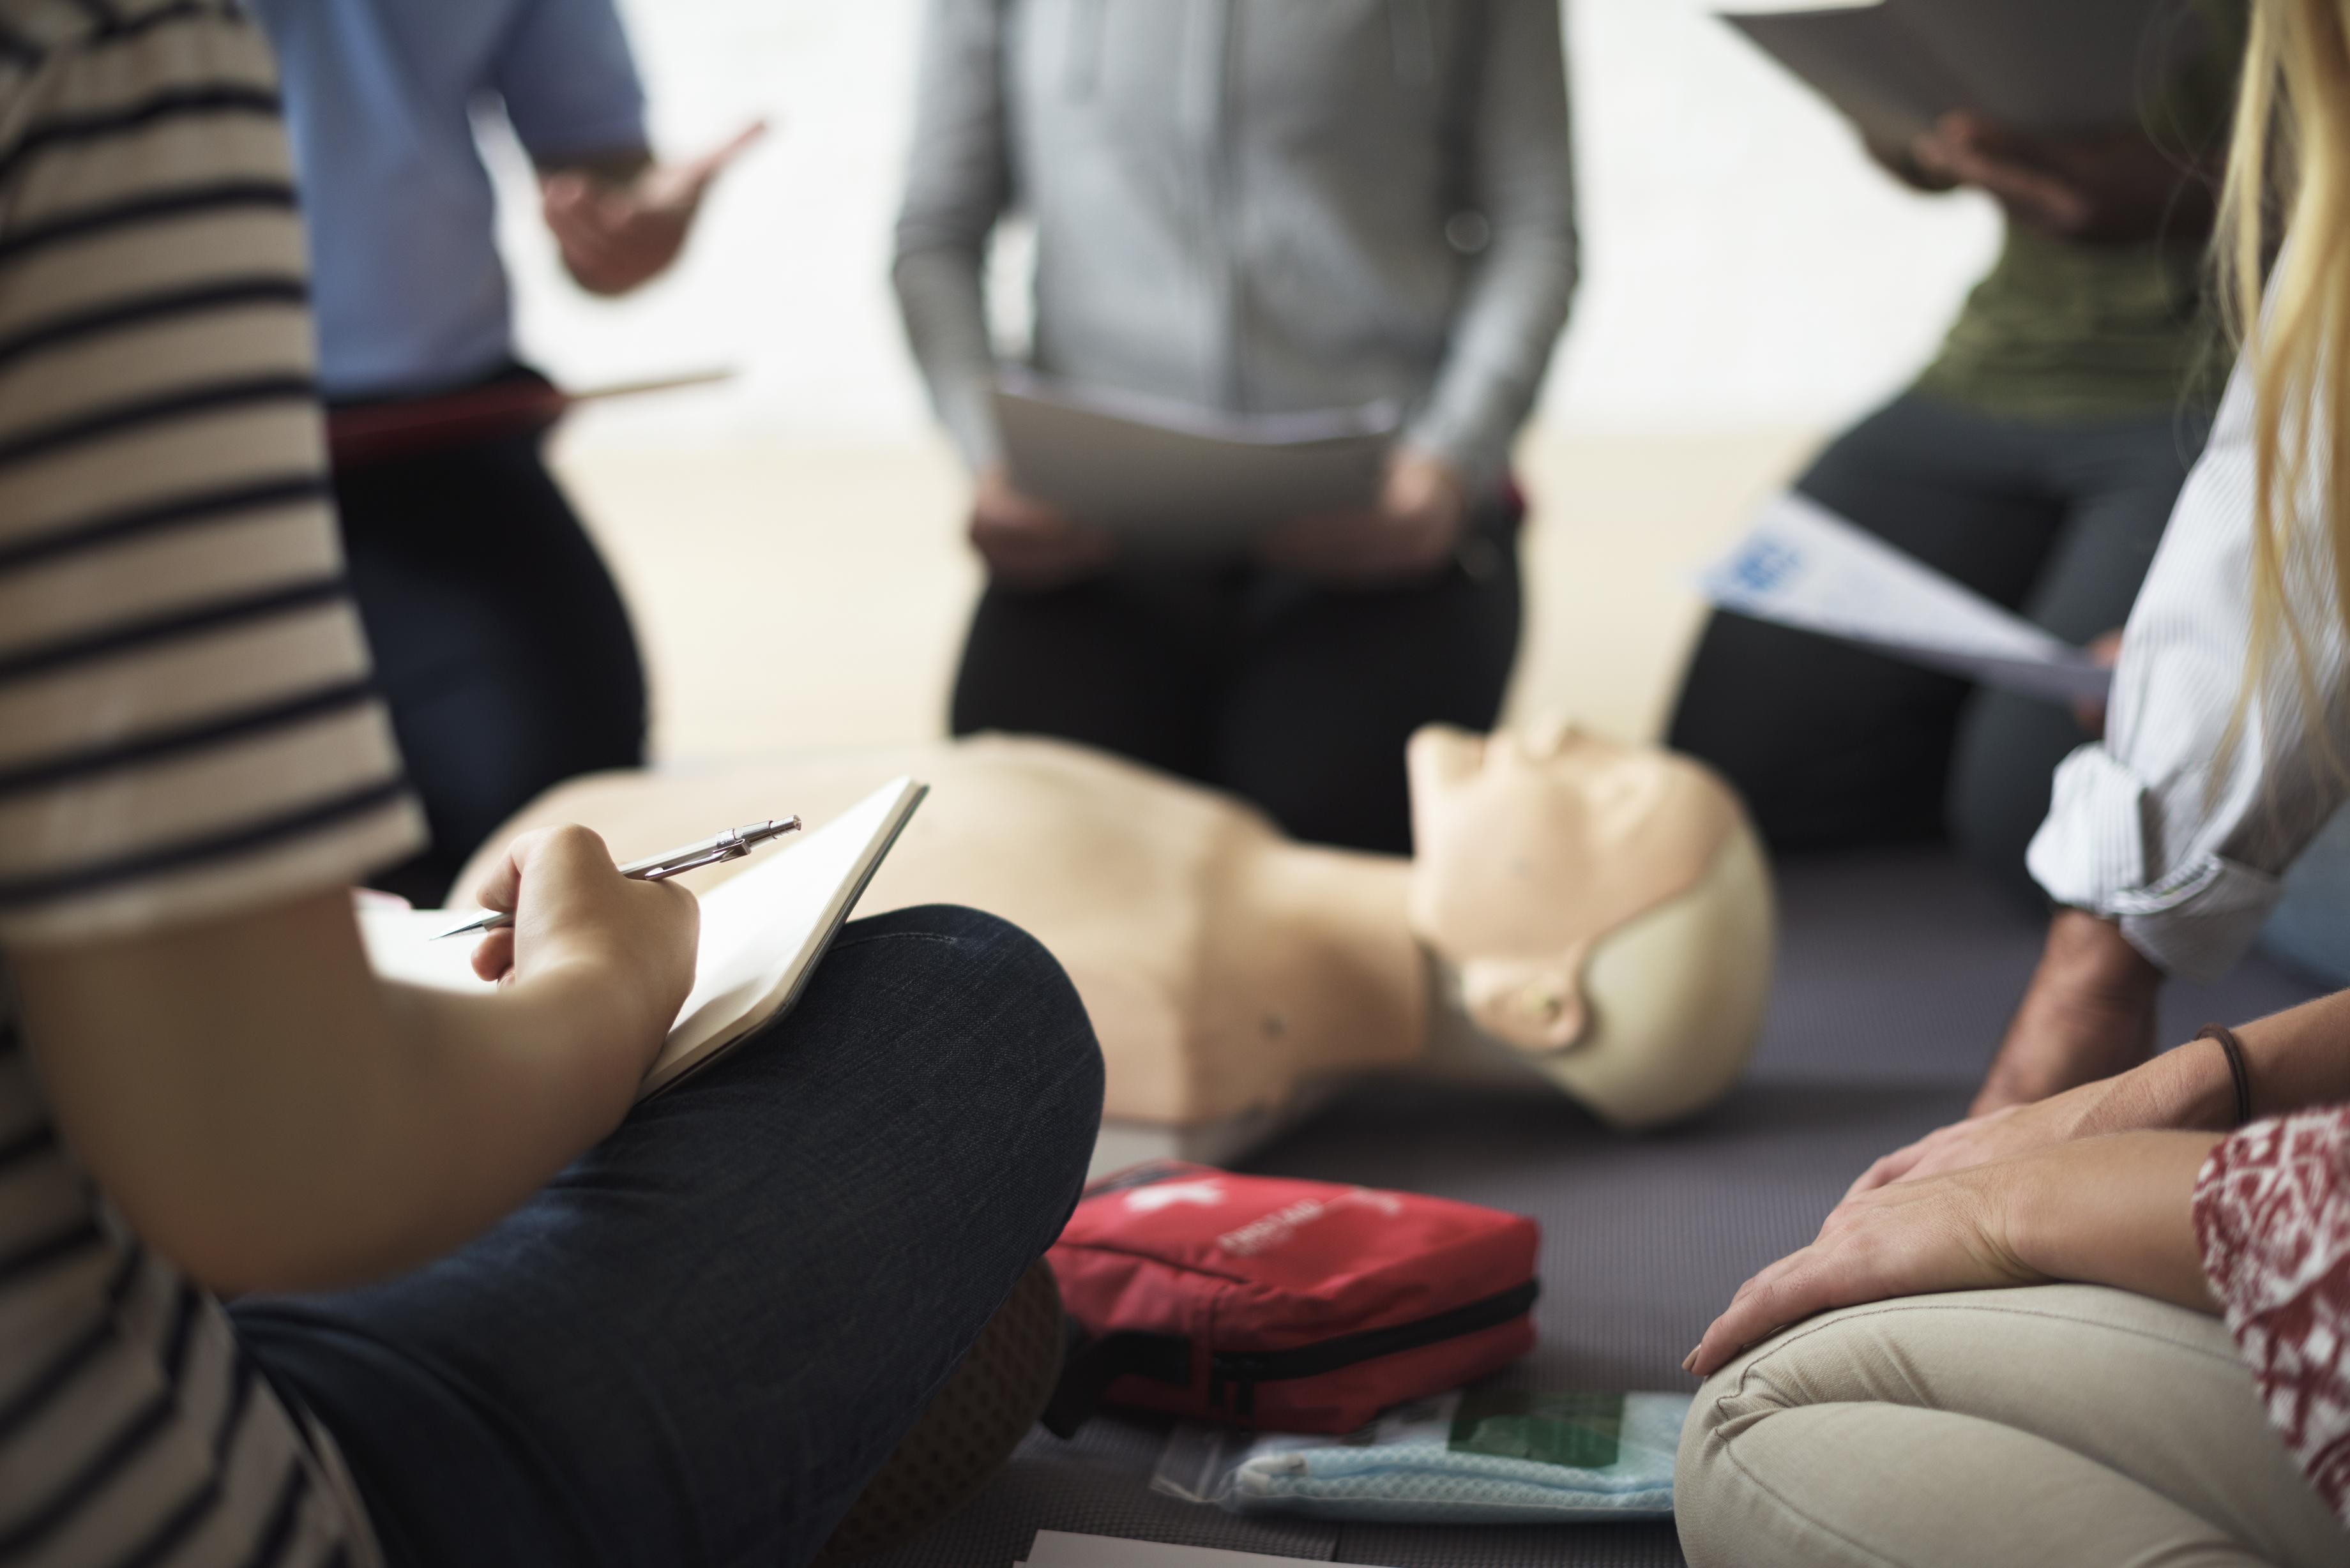 CPR & AED Certification Course - Basic Life Support BLS Provider